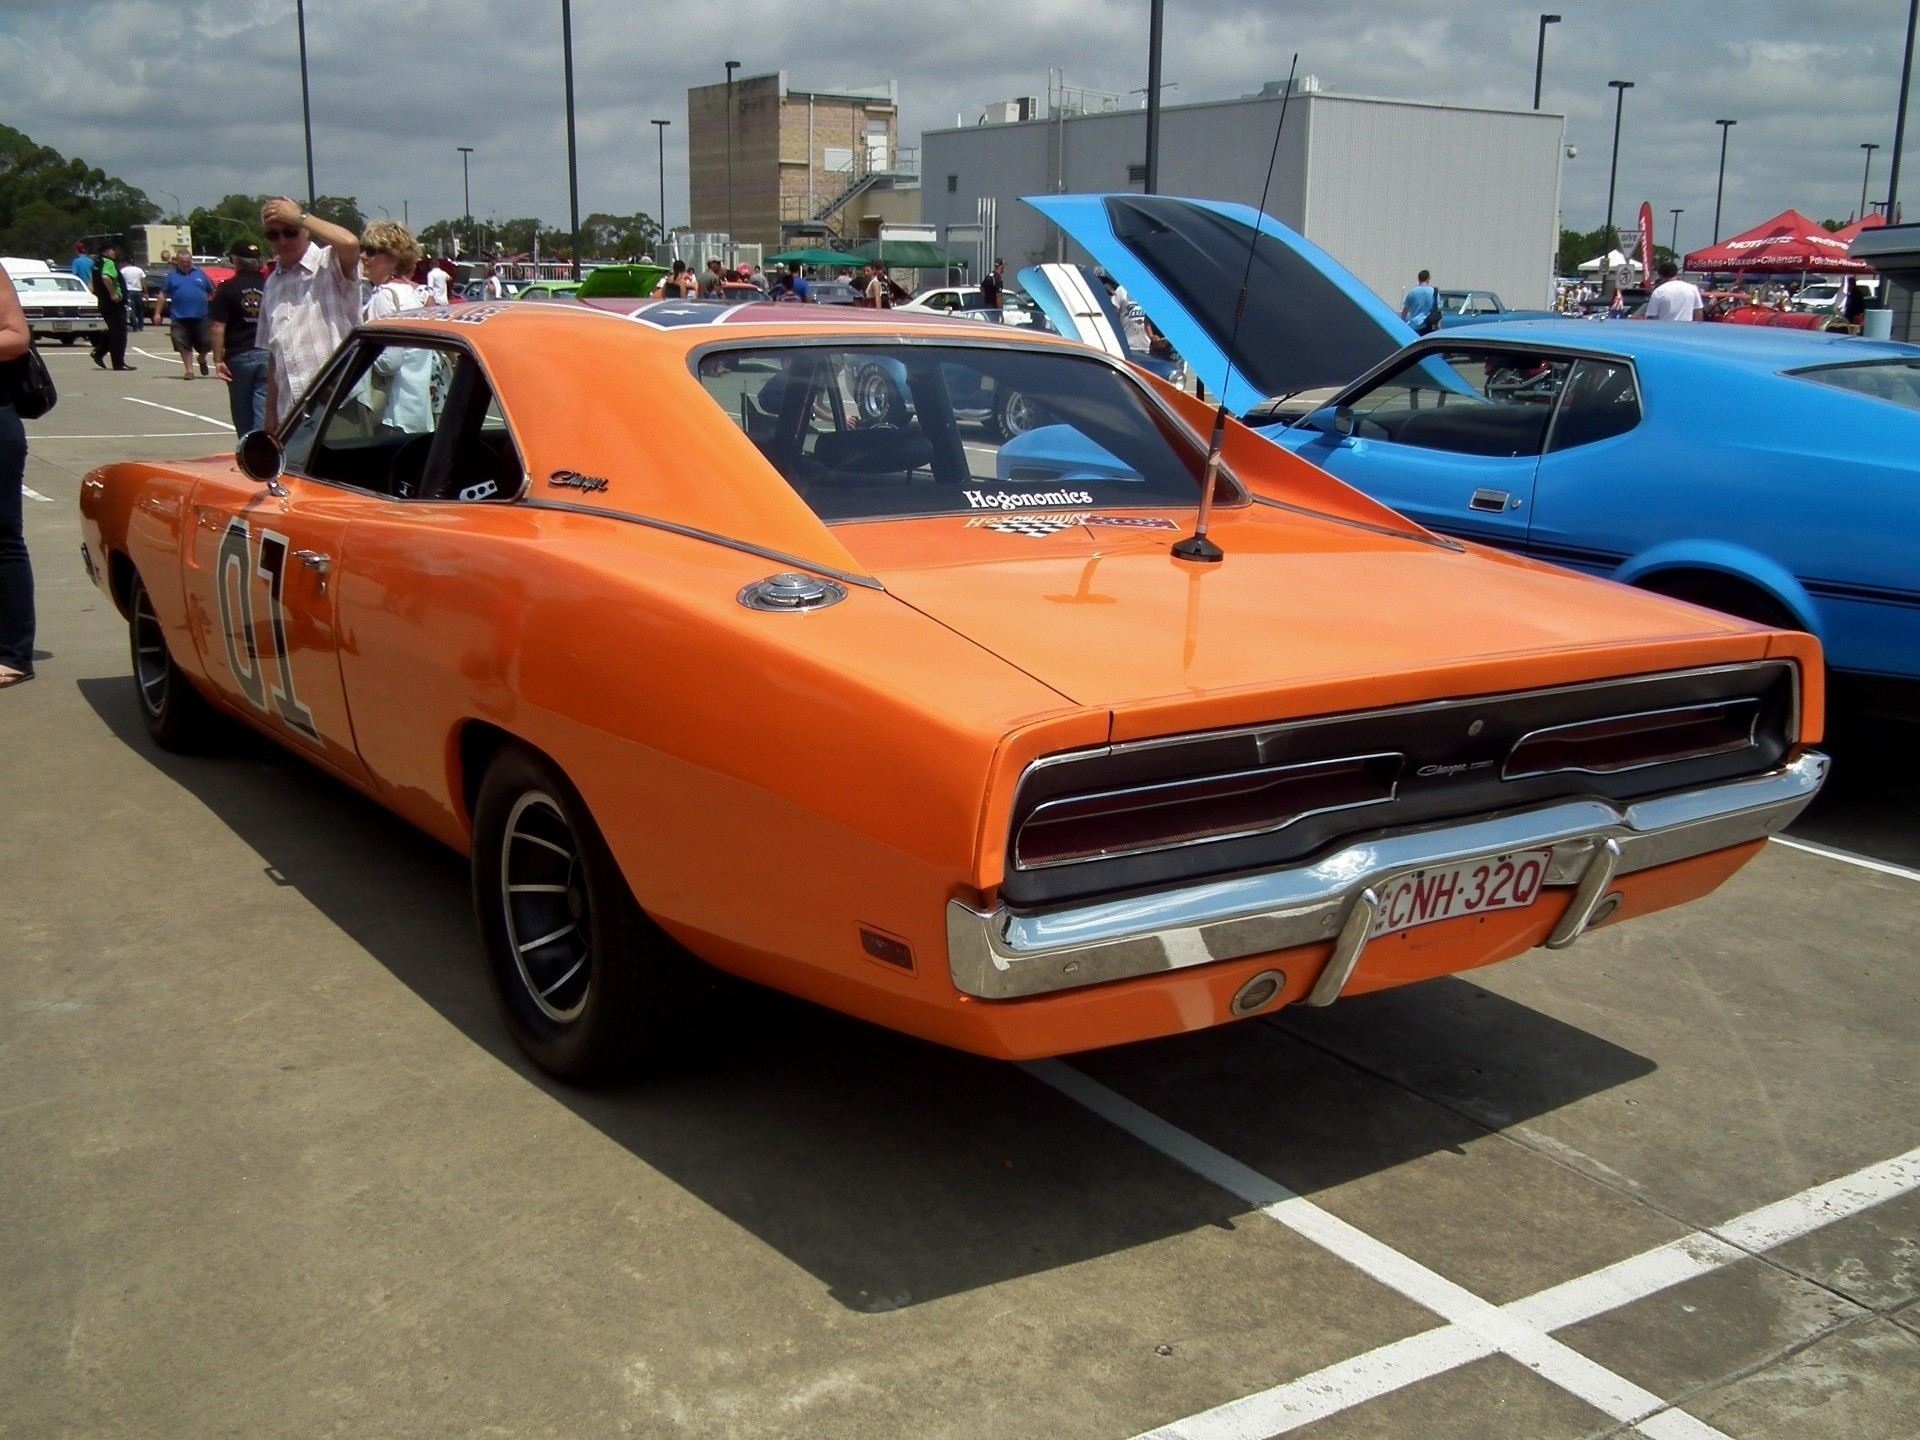 1920x1440 Dodge Charger General Lee Wallpaper Free